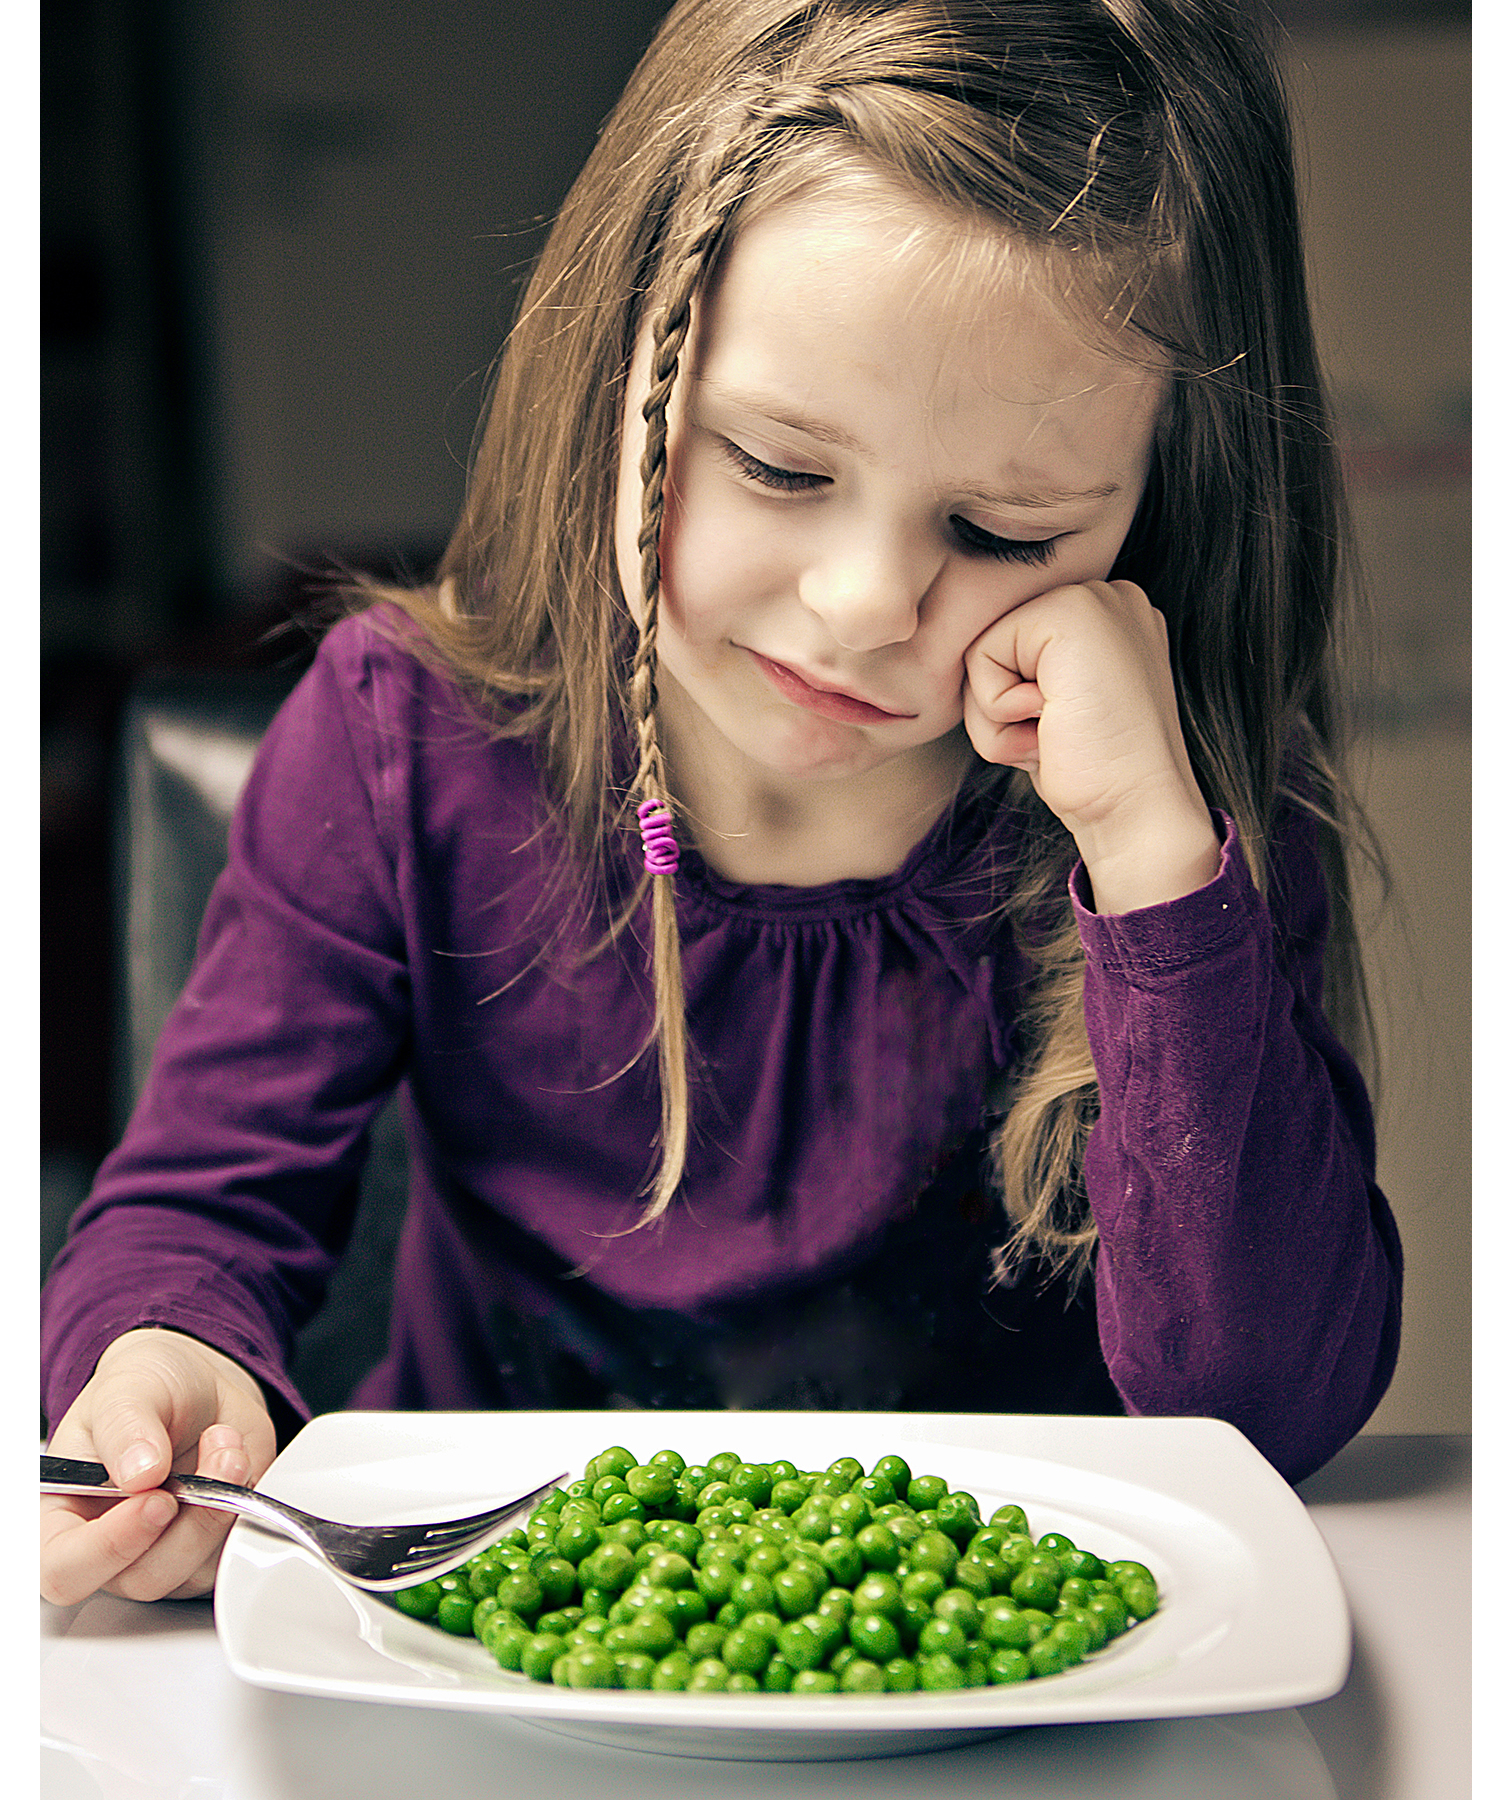 Girl upset about eating peas